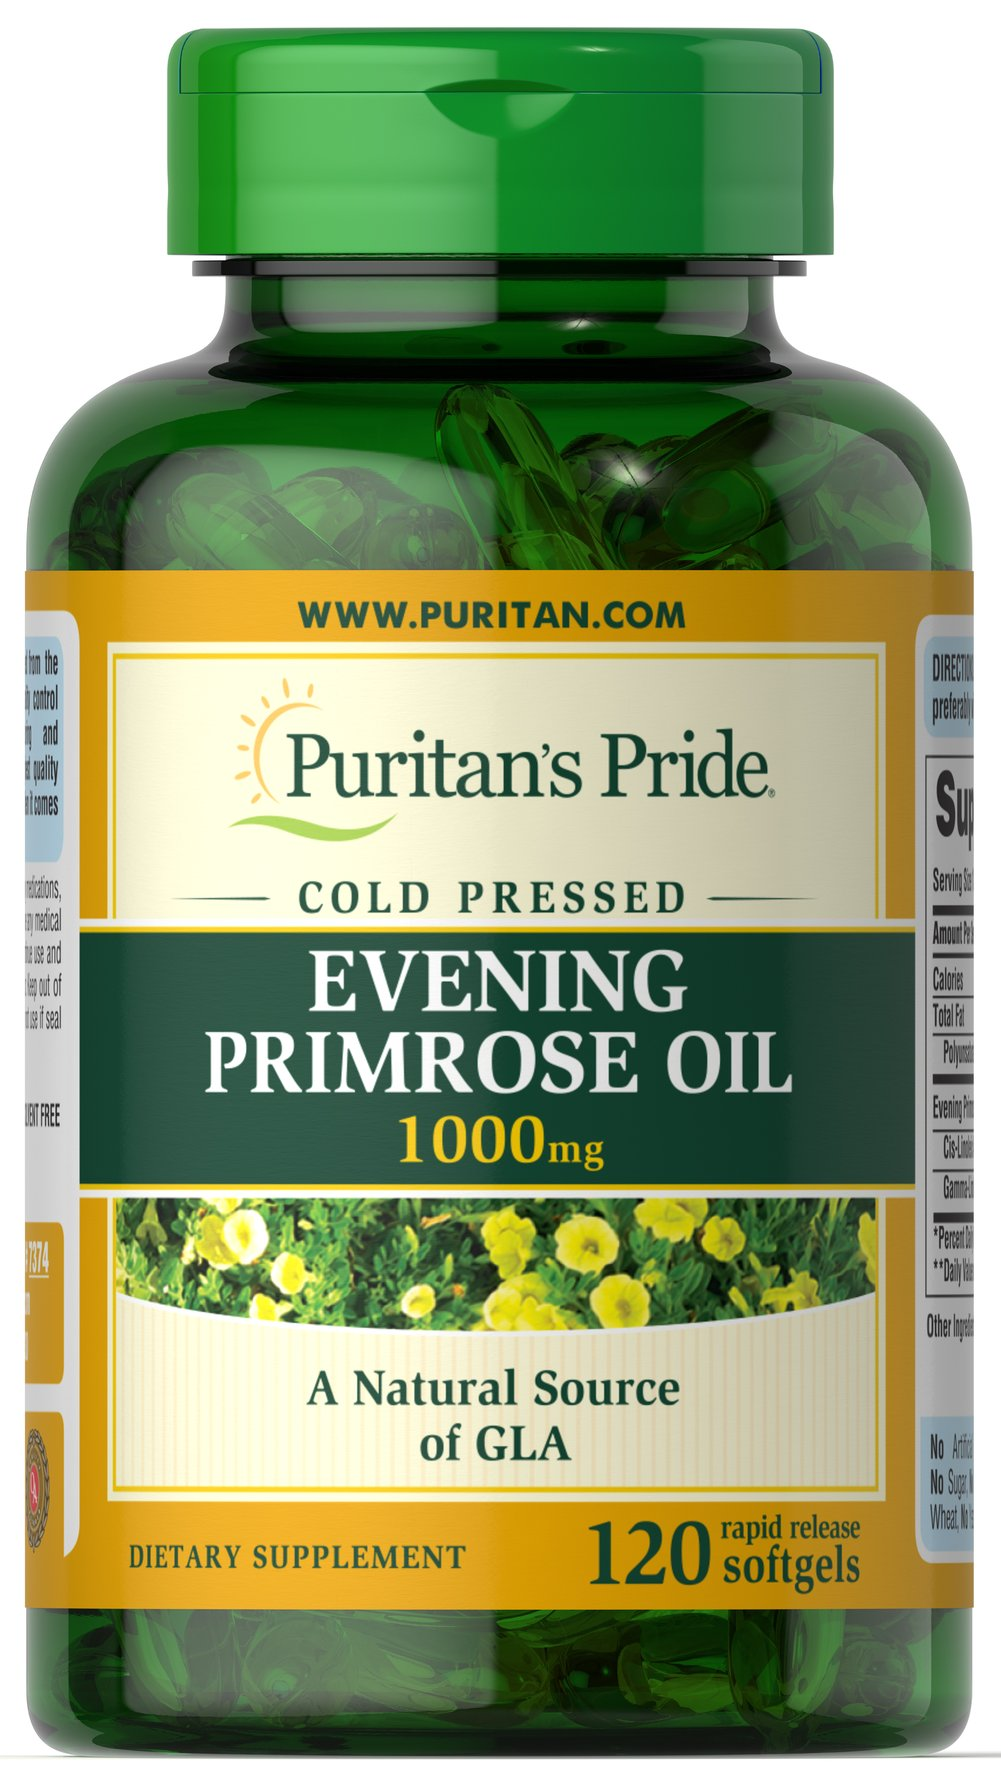 Evening Primrose Oil 1000 mg with GLA <p>EPO may play a role in promoting smooth, healthy-looking skin.** These easy-to-swallow softgels are a natural source of GLA (Gamma Linolenic Acid). Our EPO contains one of the most concentrated forms of this Omega-6 fatty acid available today. The EPO used for Puritan's Pride is 100% pure, solvent-free, cold pressed and void of hexane and other solvent residues. </p><p>All three potencies (500 mg, 1000 mg, or 1300 mg) deliver 9% GLA cont